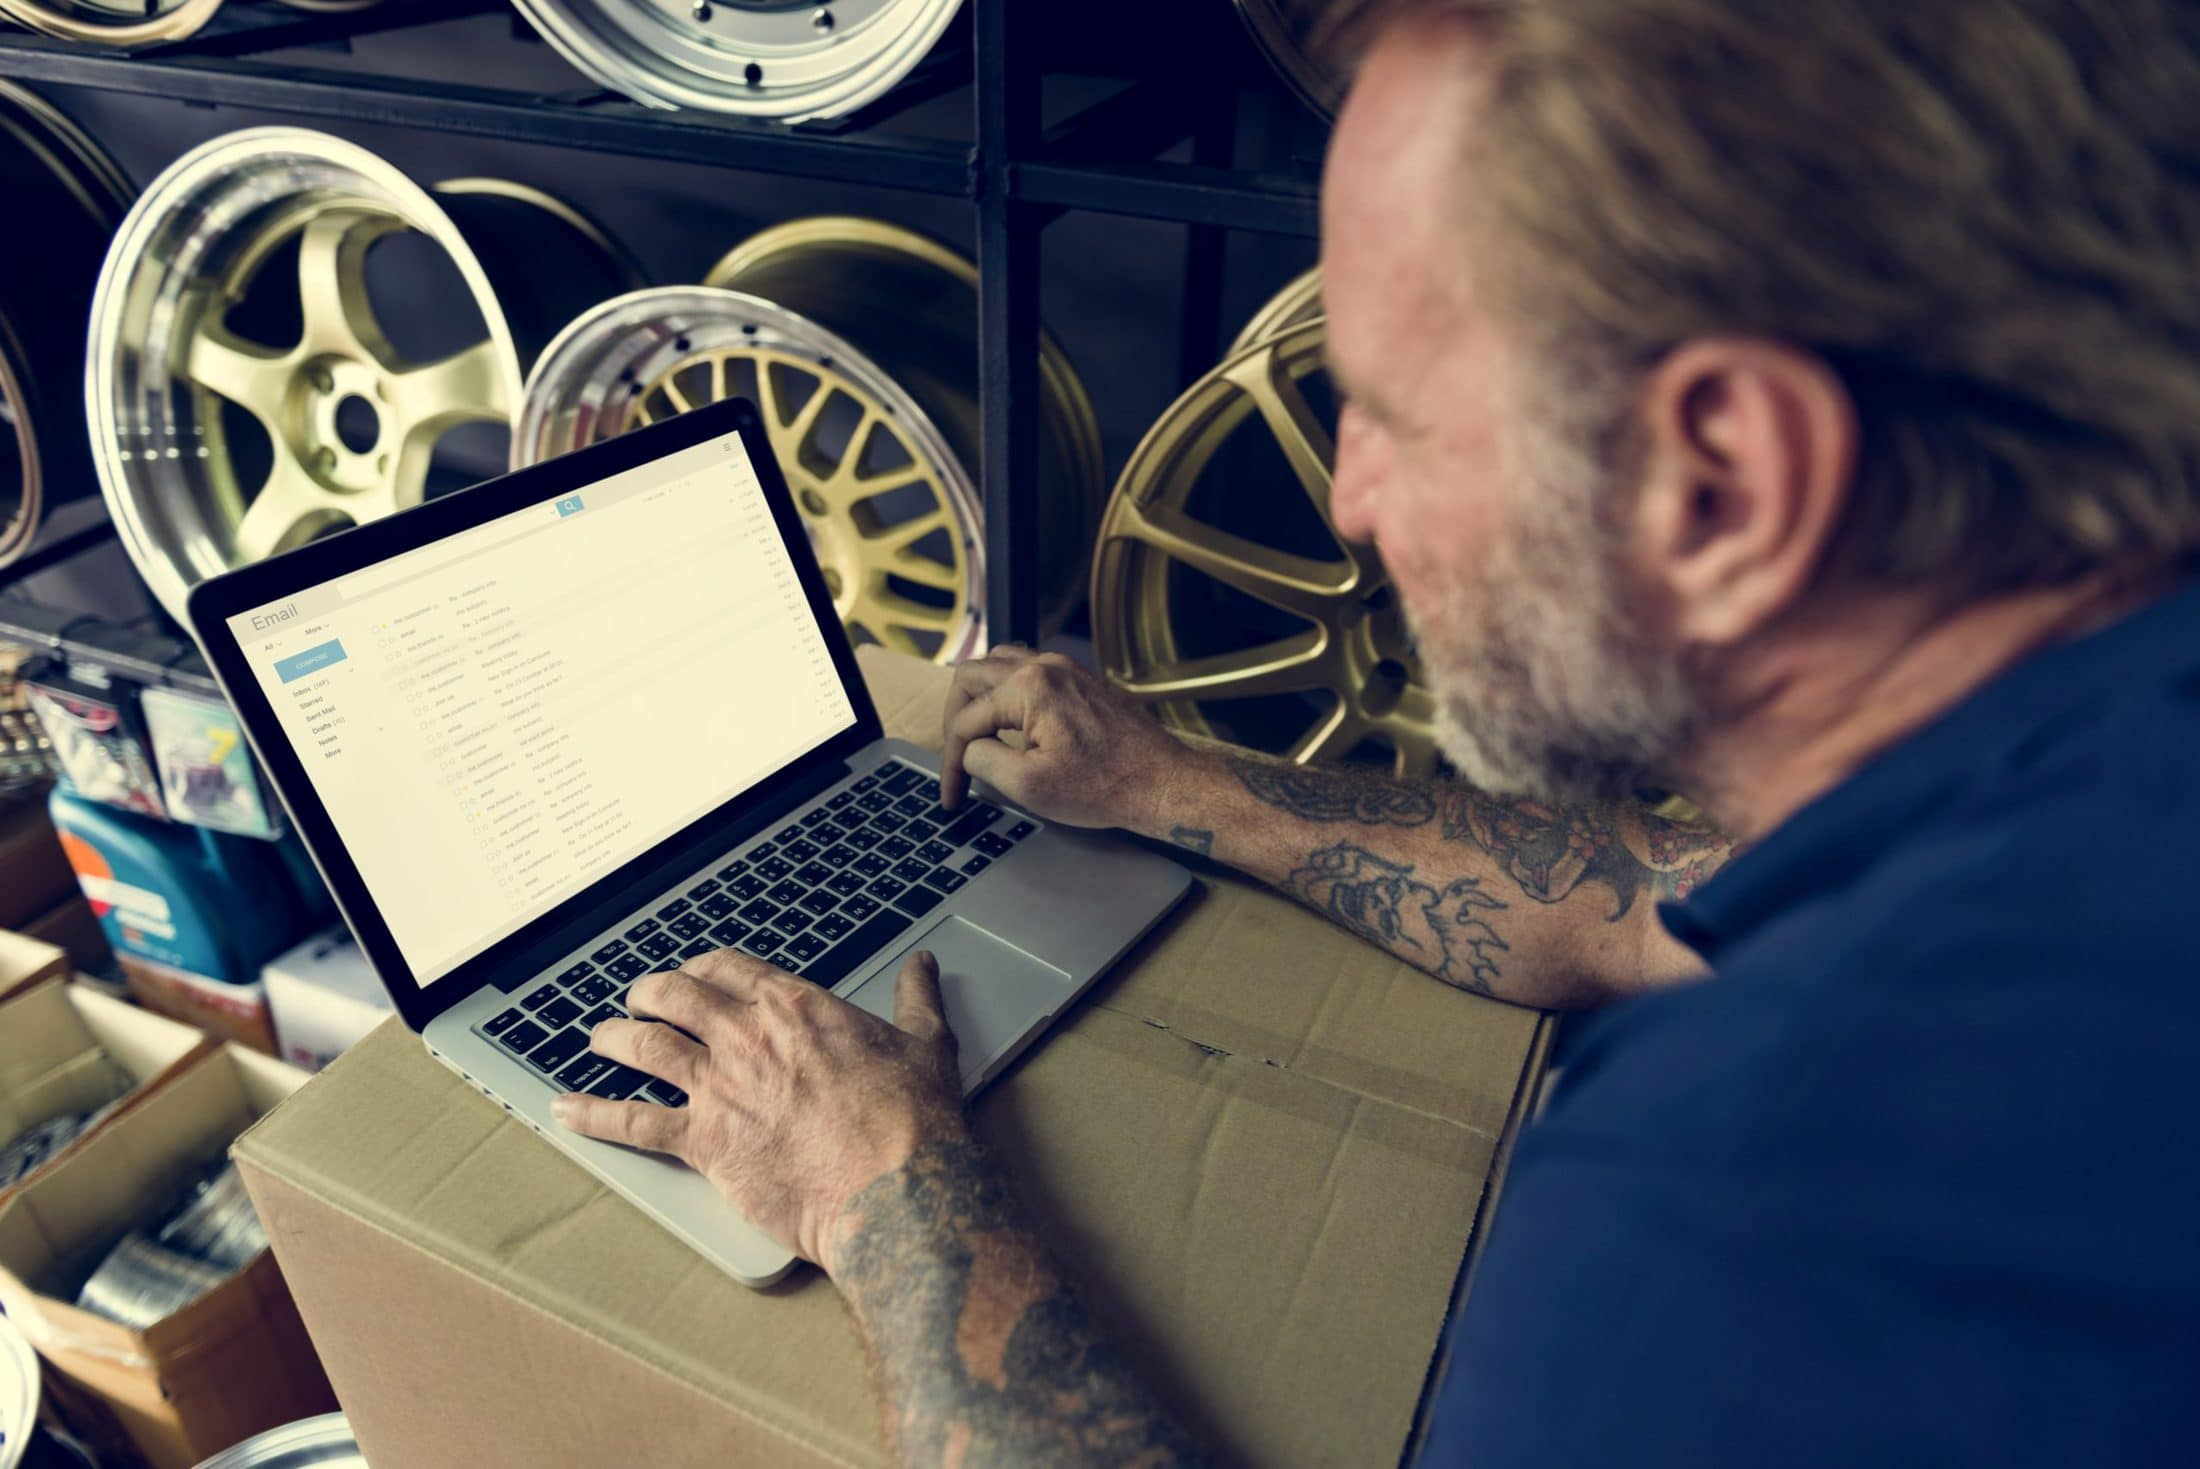 car parts shop owner warehouse checking emails con PJSTF33 scaled